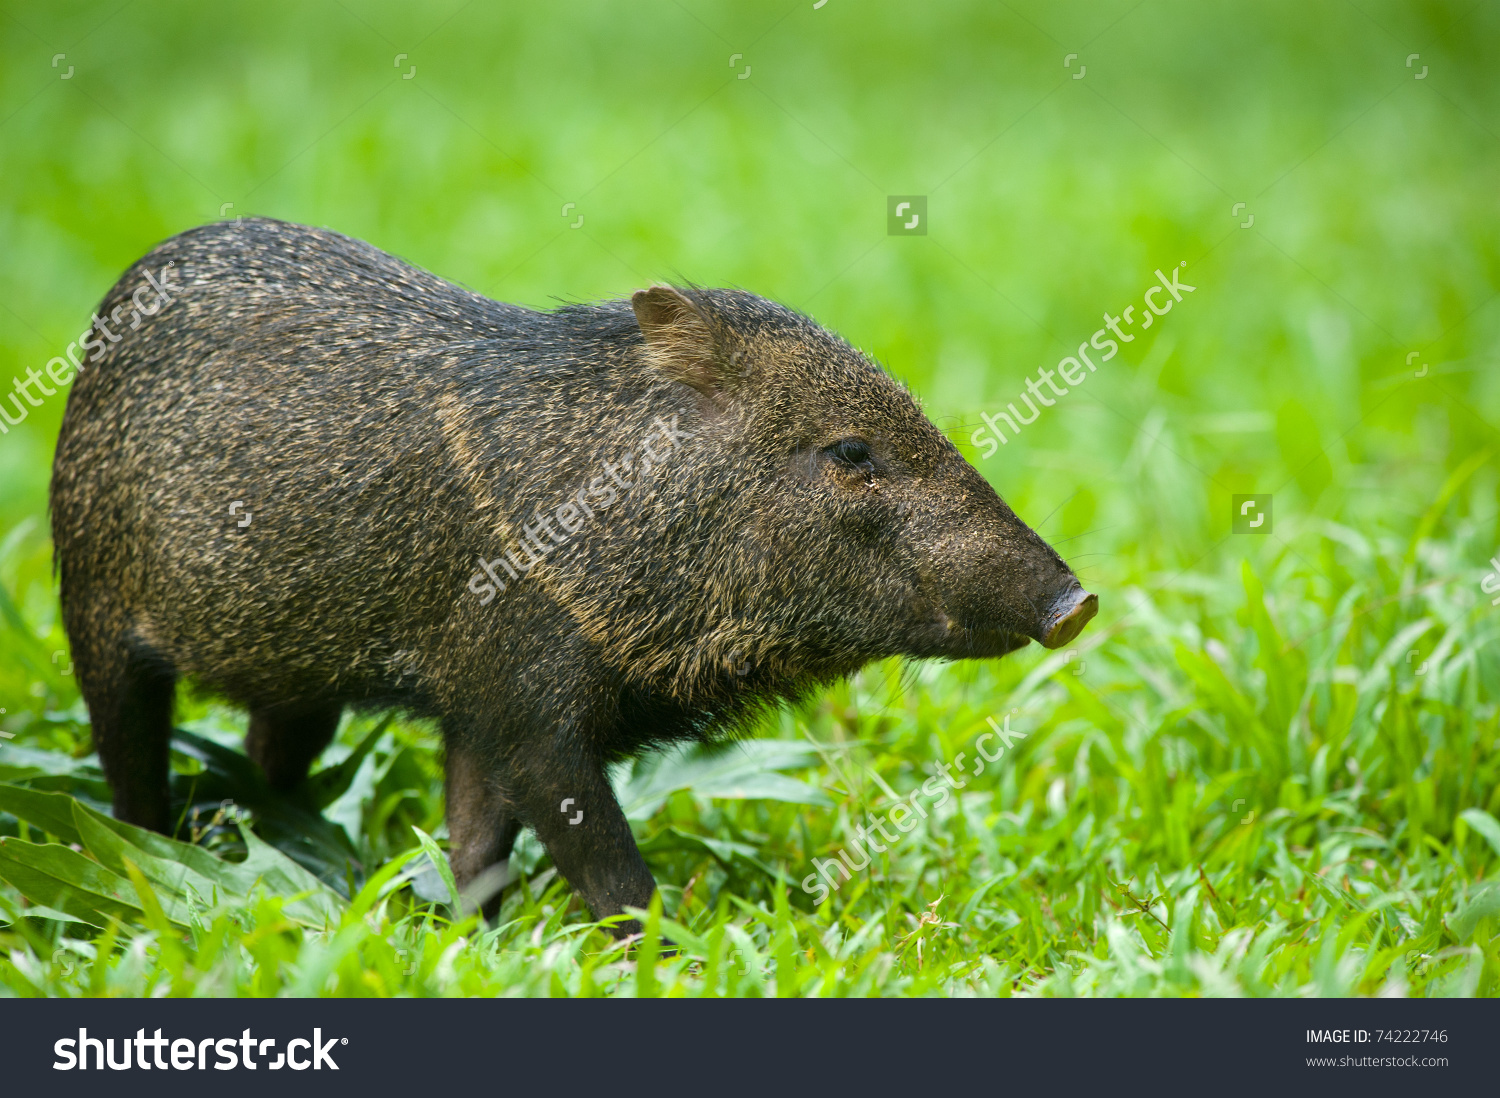 Collared Peccary Javelina Pecari Tajacu Stock Photo 74222746.